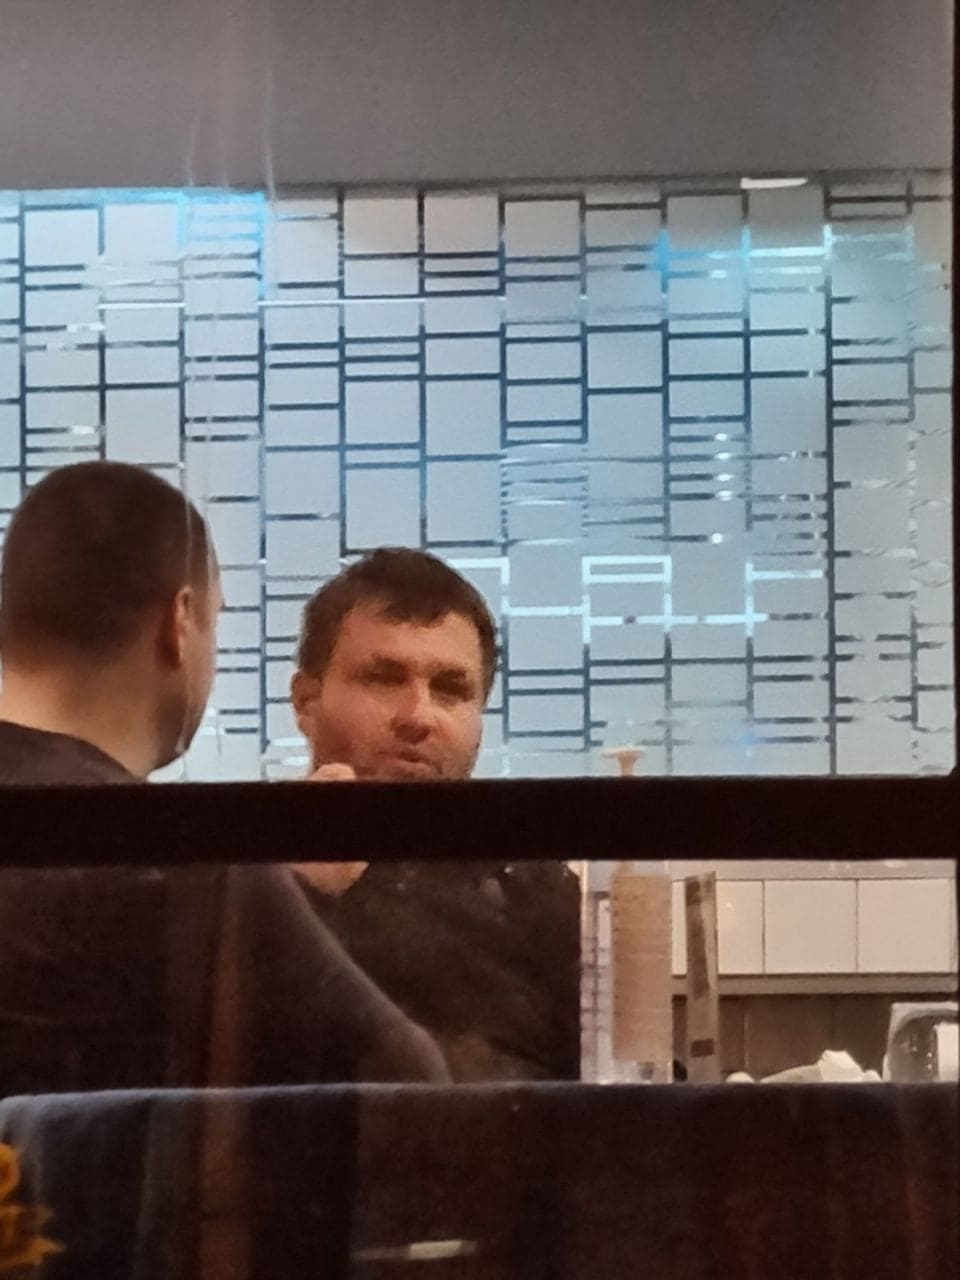 Healthcare authorities cover for Centar Mayor Sasa Bogdanovic after he was caught violating coronavirus restrictions